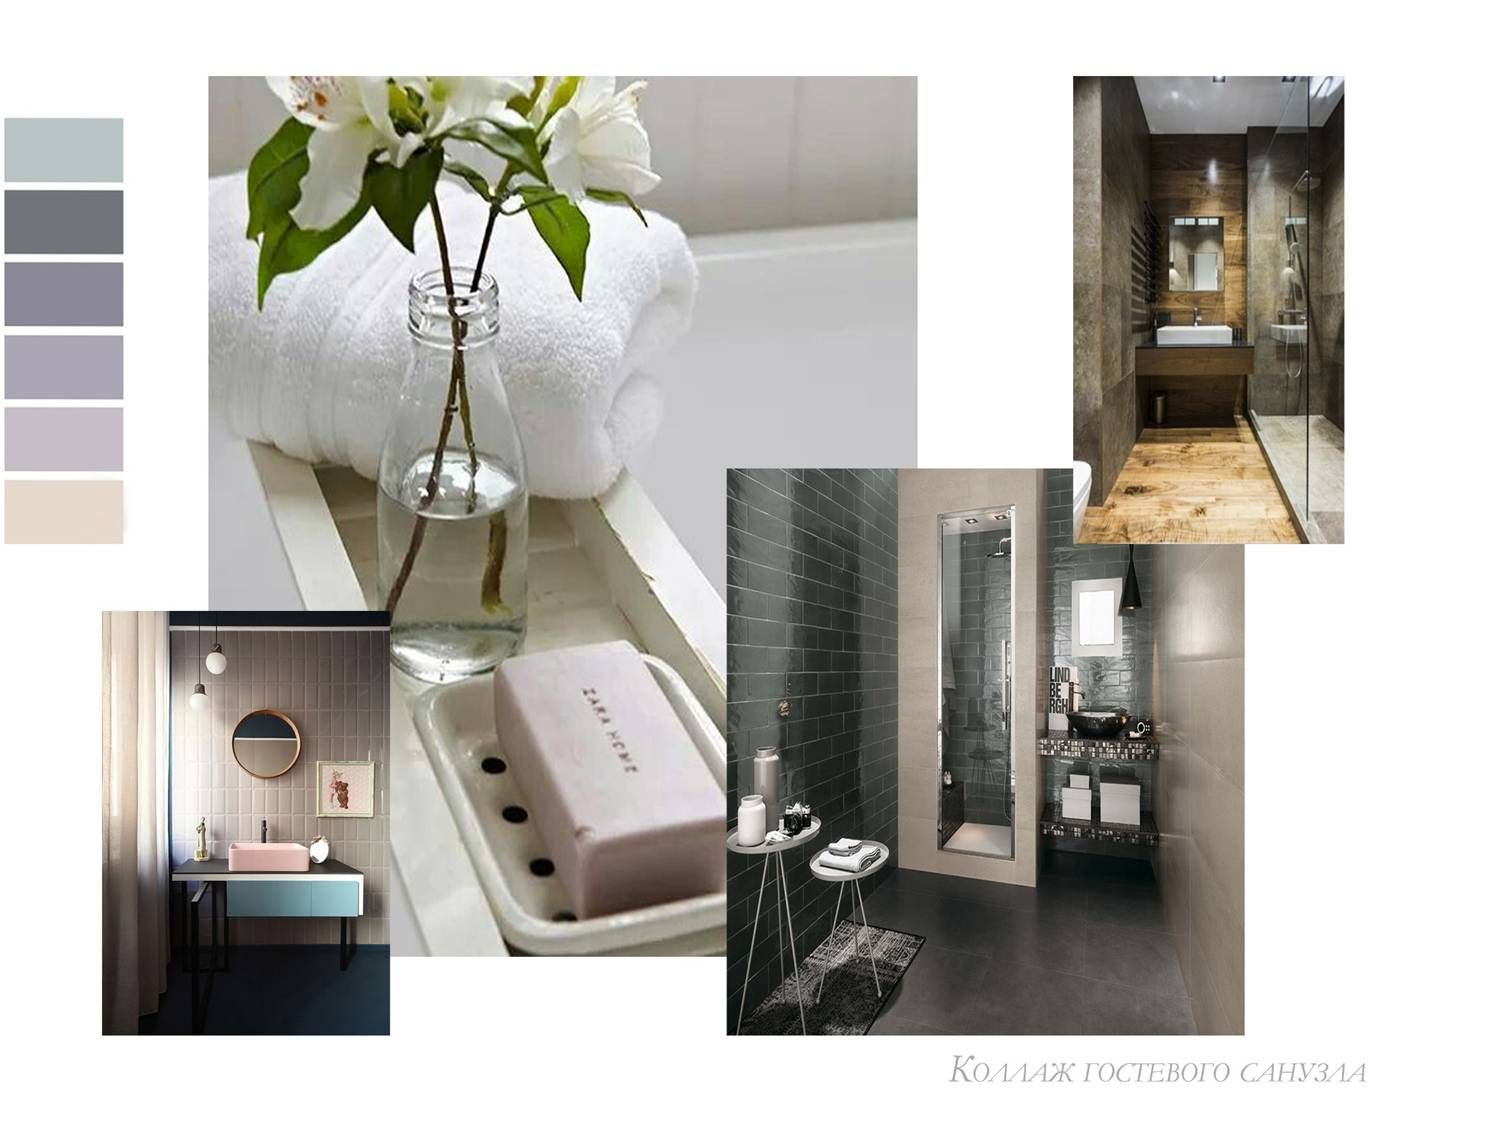 Mid Century Modern Style Bathroom Collage By Anna Spirina Interior Design Course Student